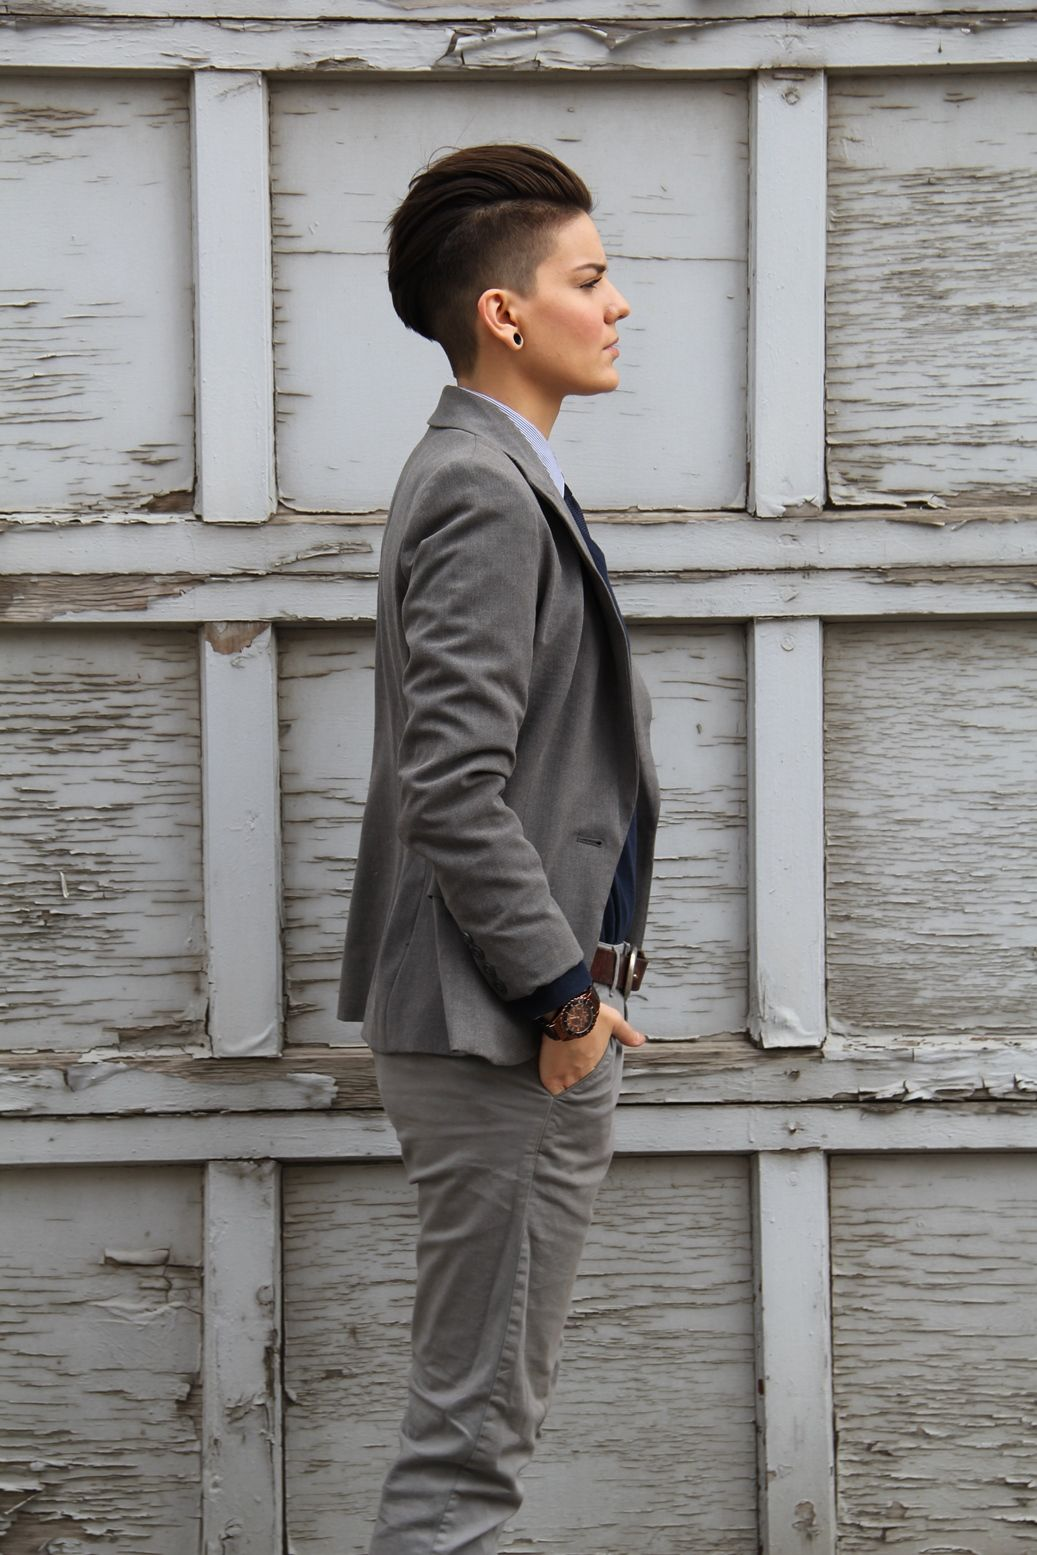 Alyssia Evans , Faded undercut Estilo Tomboy, Tomboy Haircut, Dapper  Haircut, Androgynous Haircut